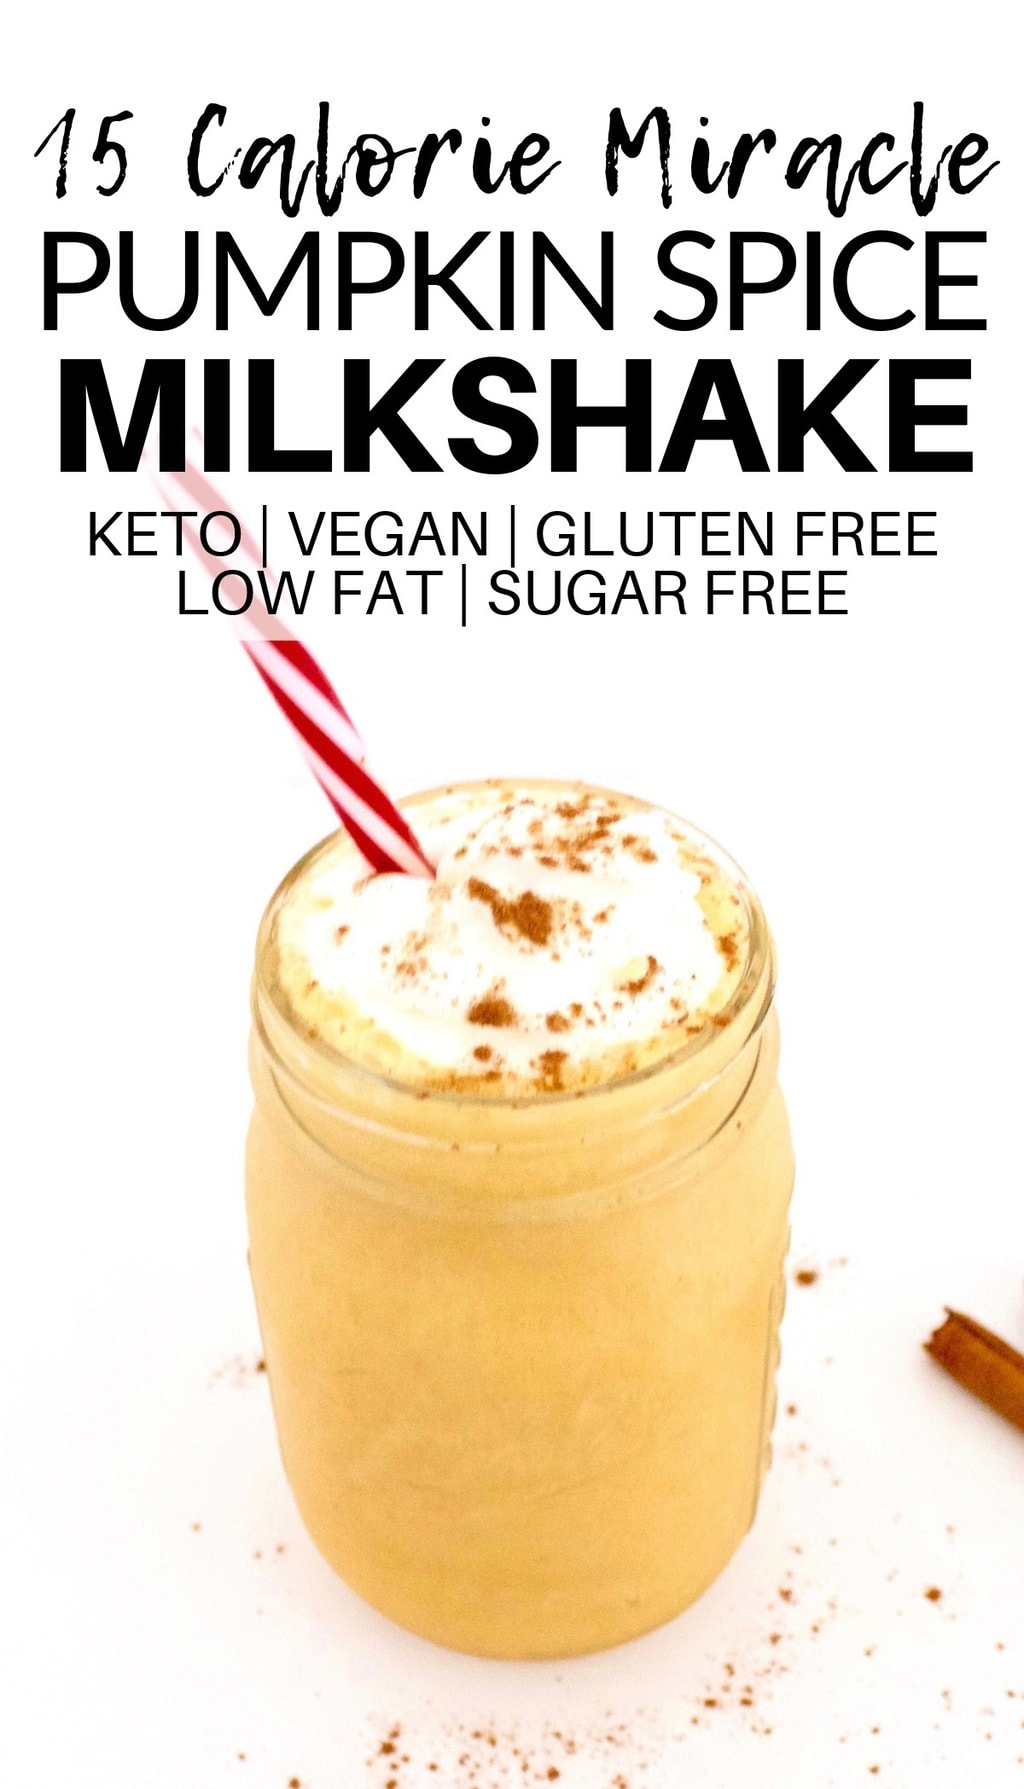 This 15-Calorie Vegan Pumpkin Spice Milkshake is a Fall milkshake miracle!! It is absolutely delicious and also keto, gluten-free, low-fat, low-carb, dairy-free & sugar-free.